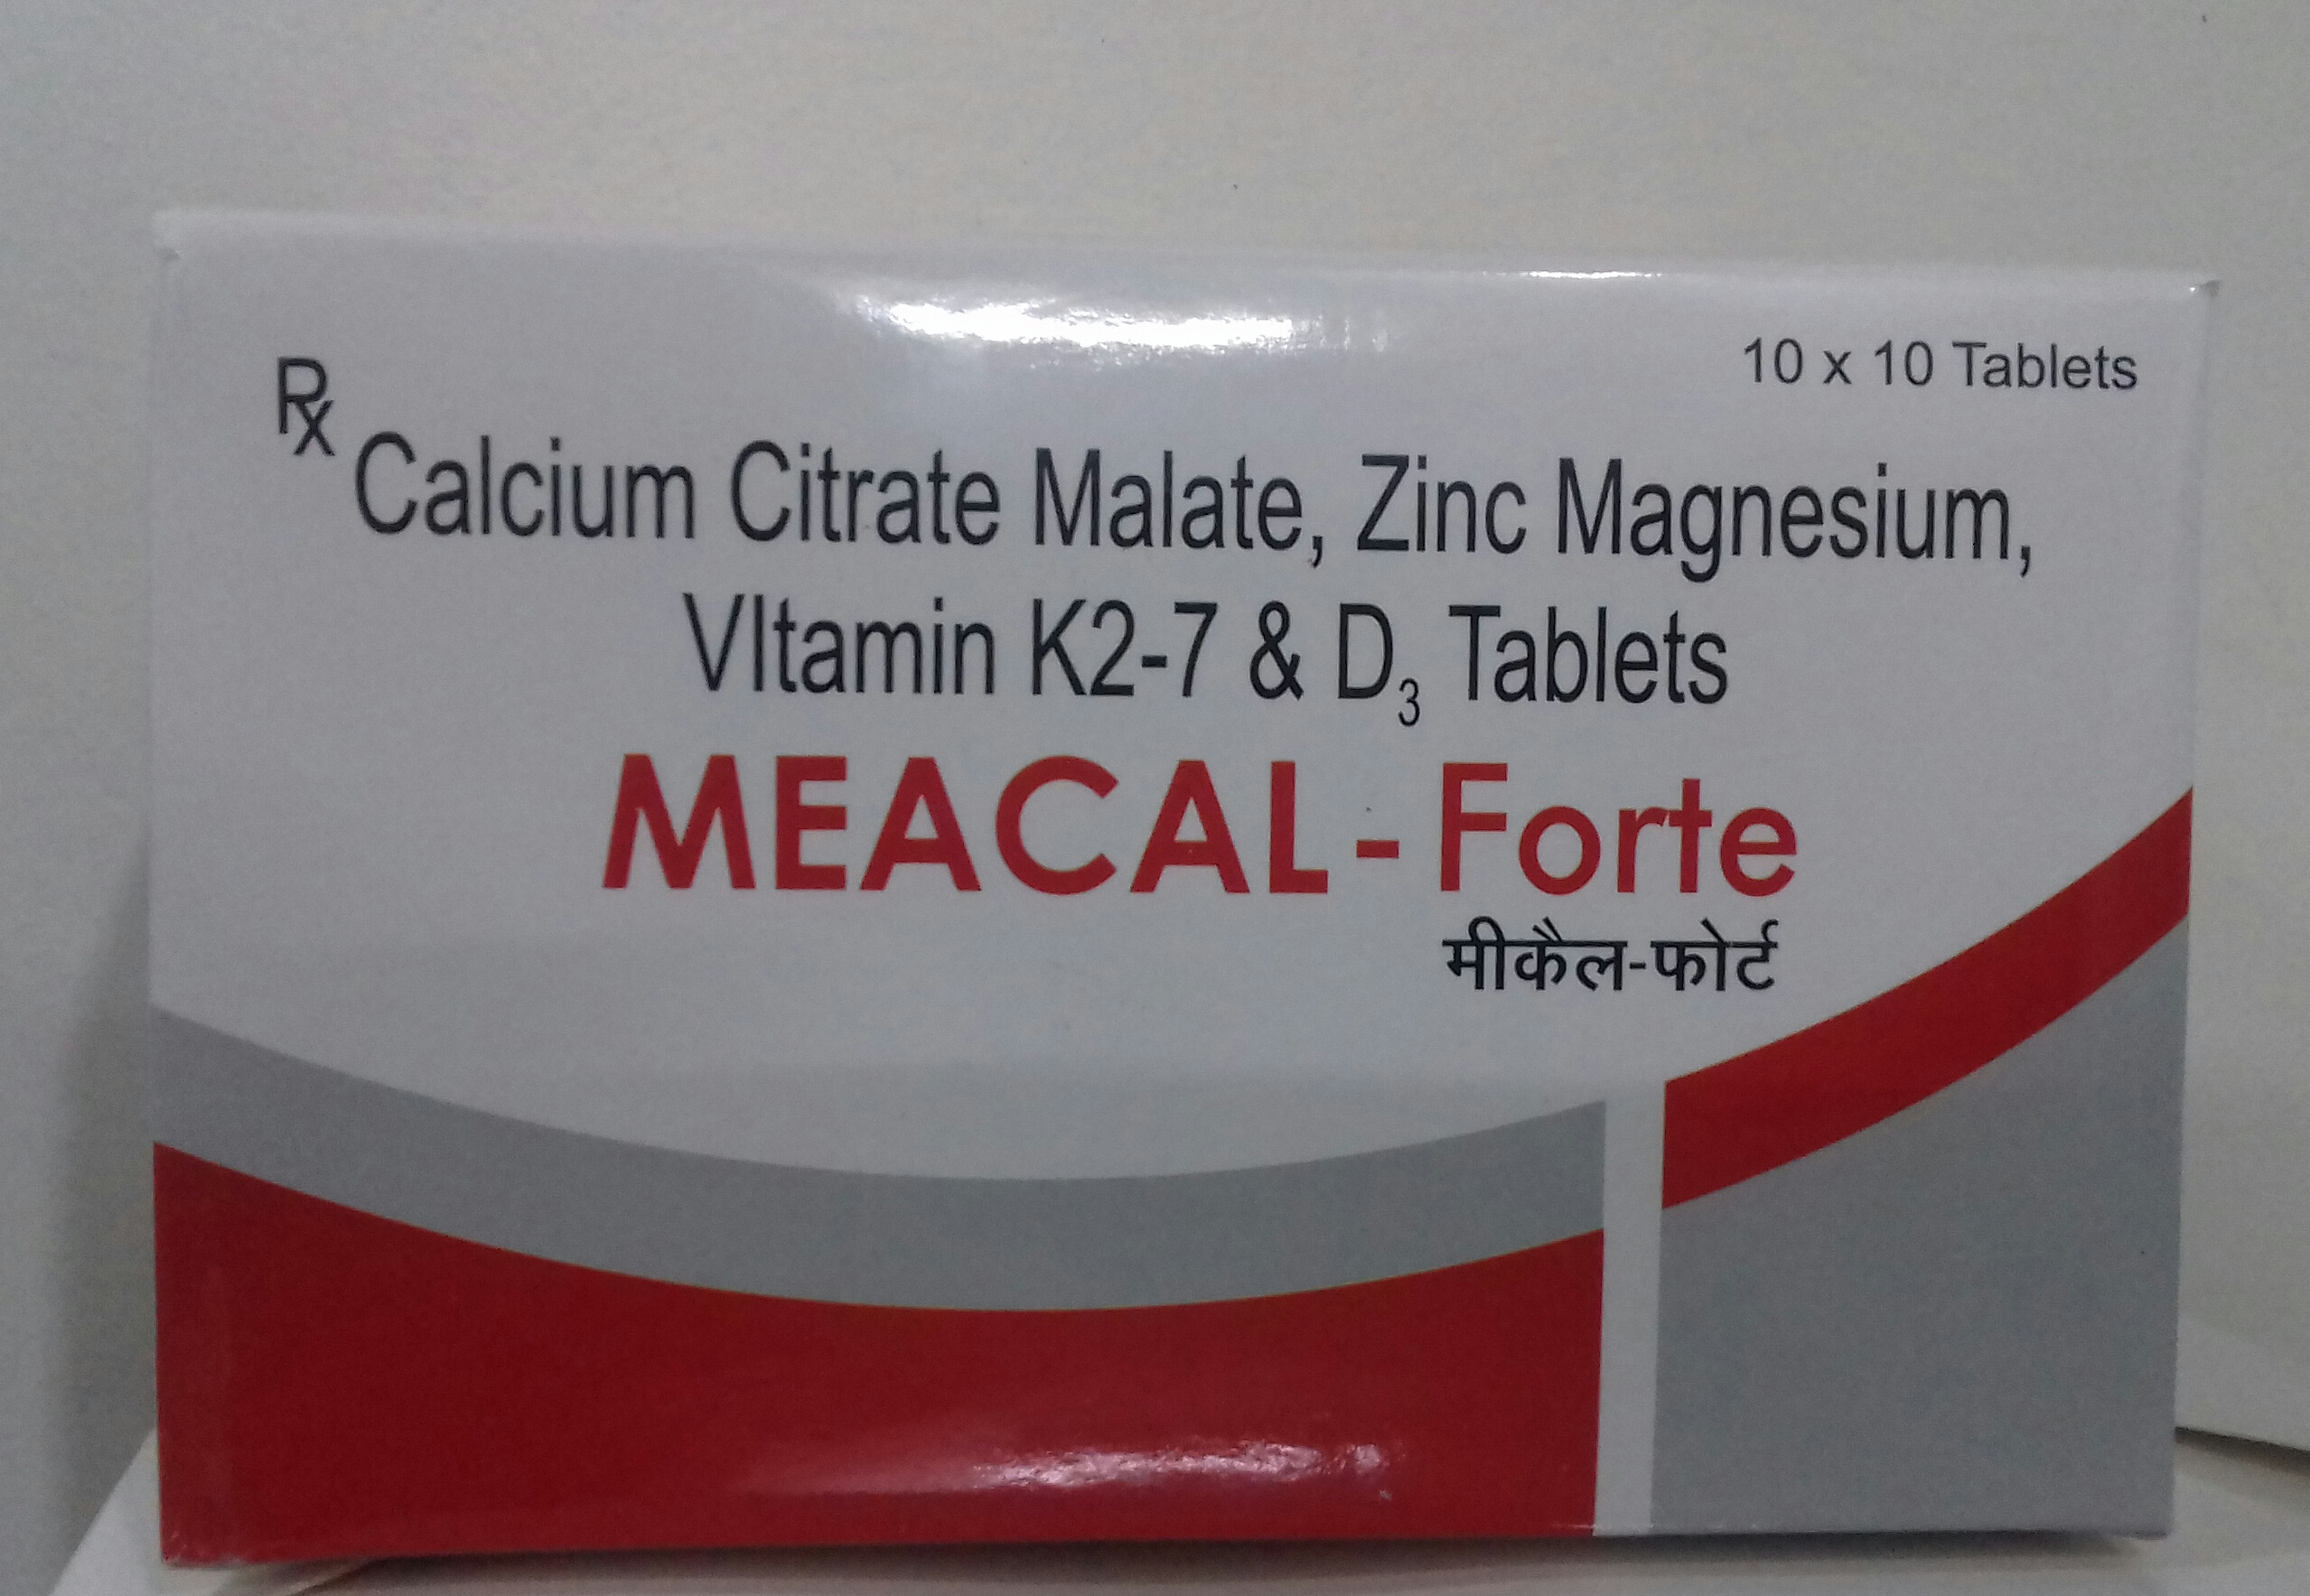 Calcium Citrate Malate Vit D3 Tablet